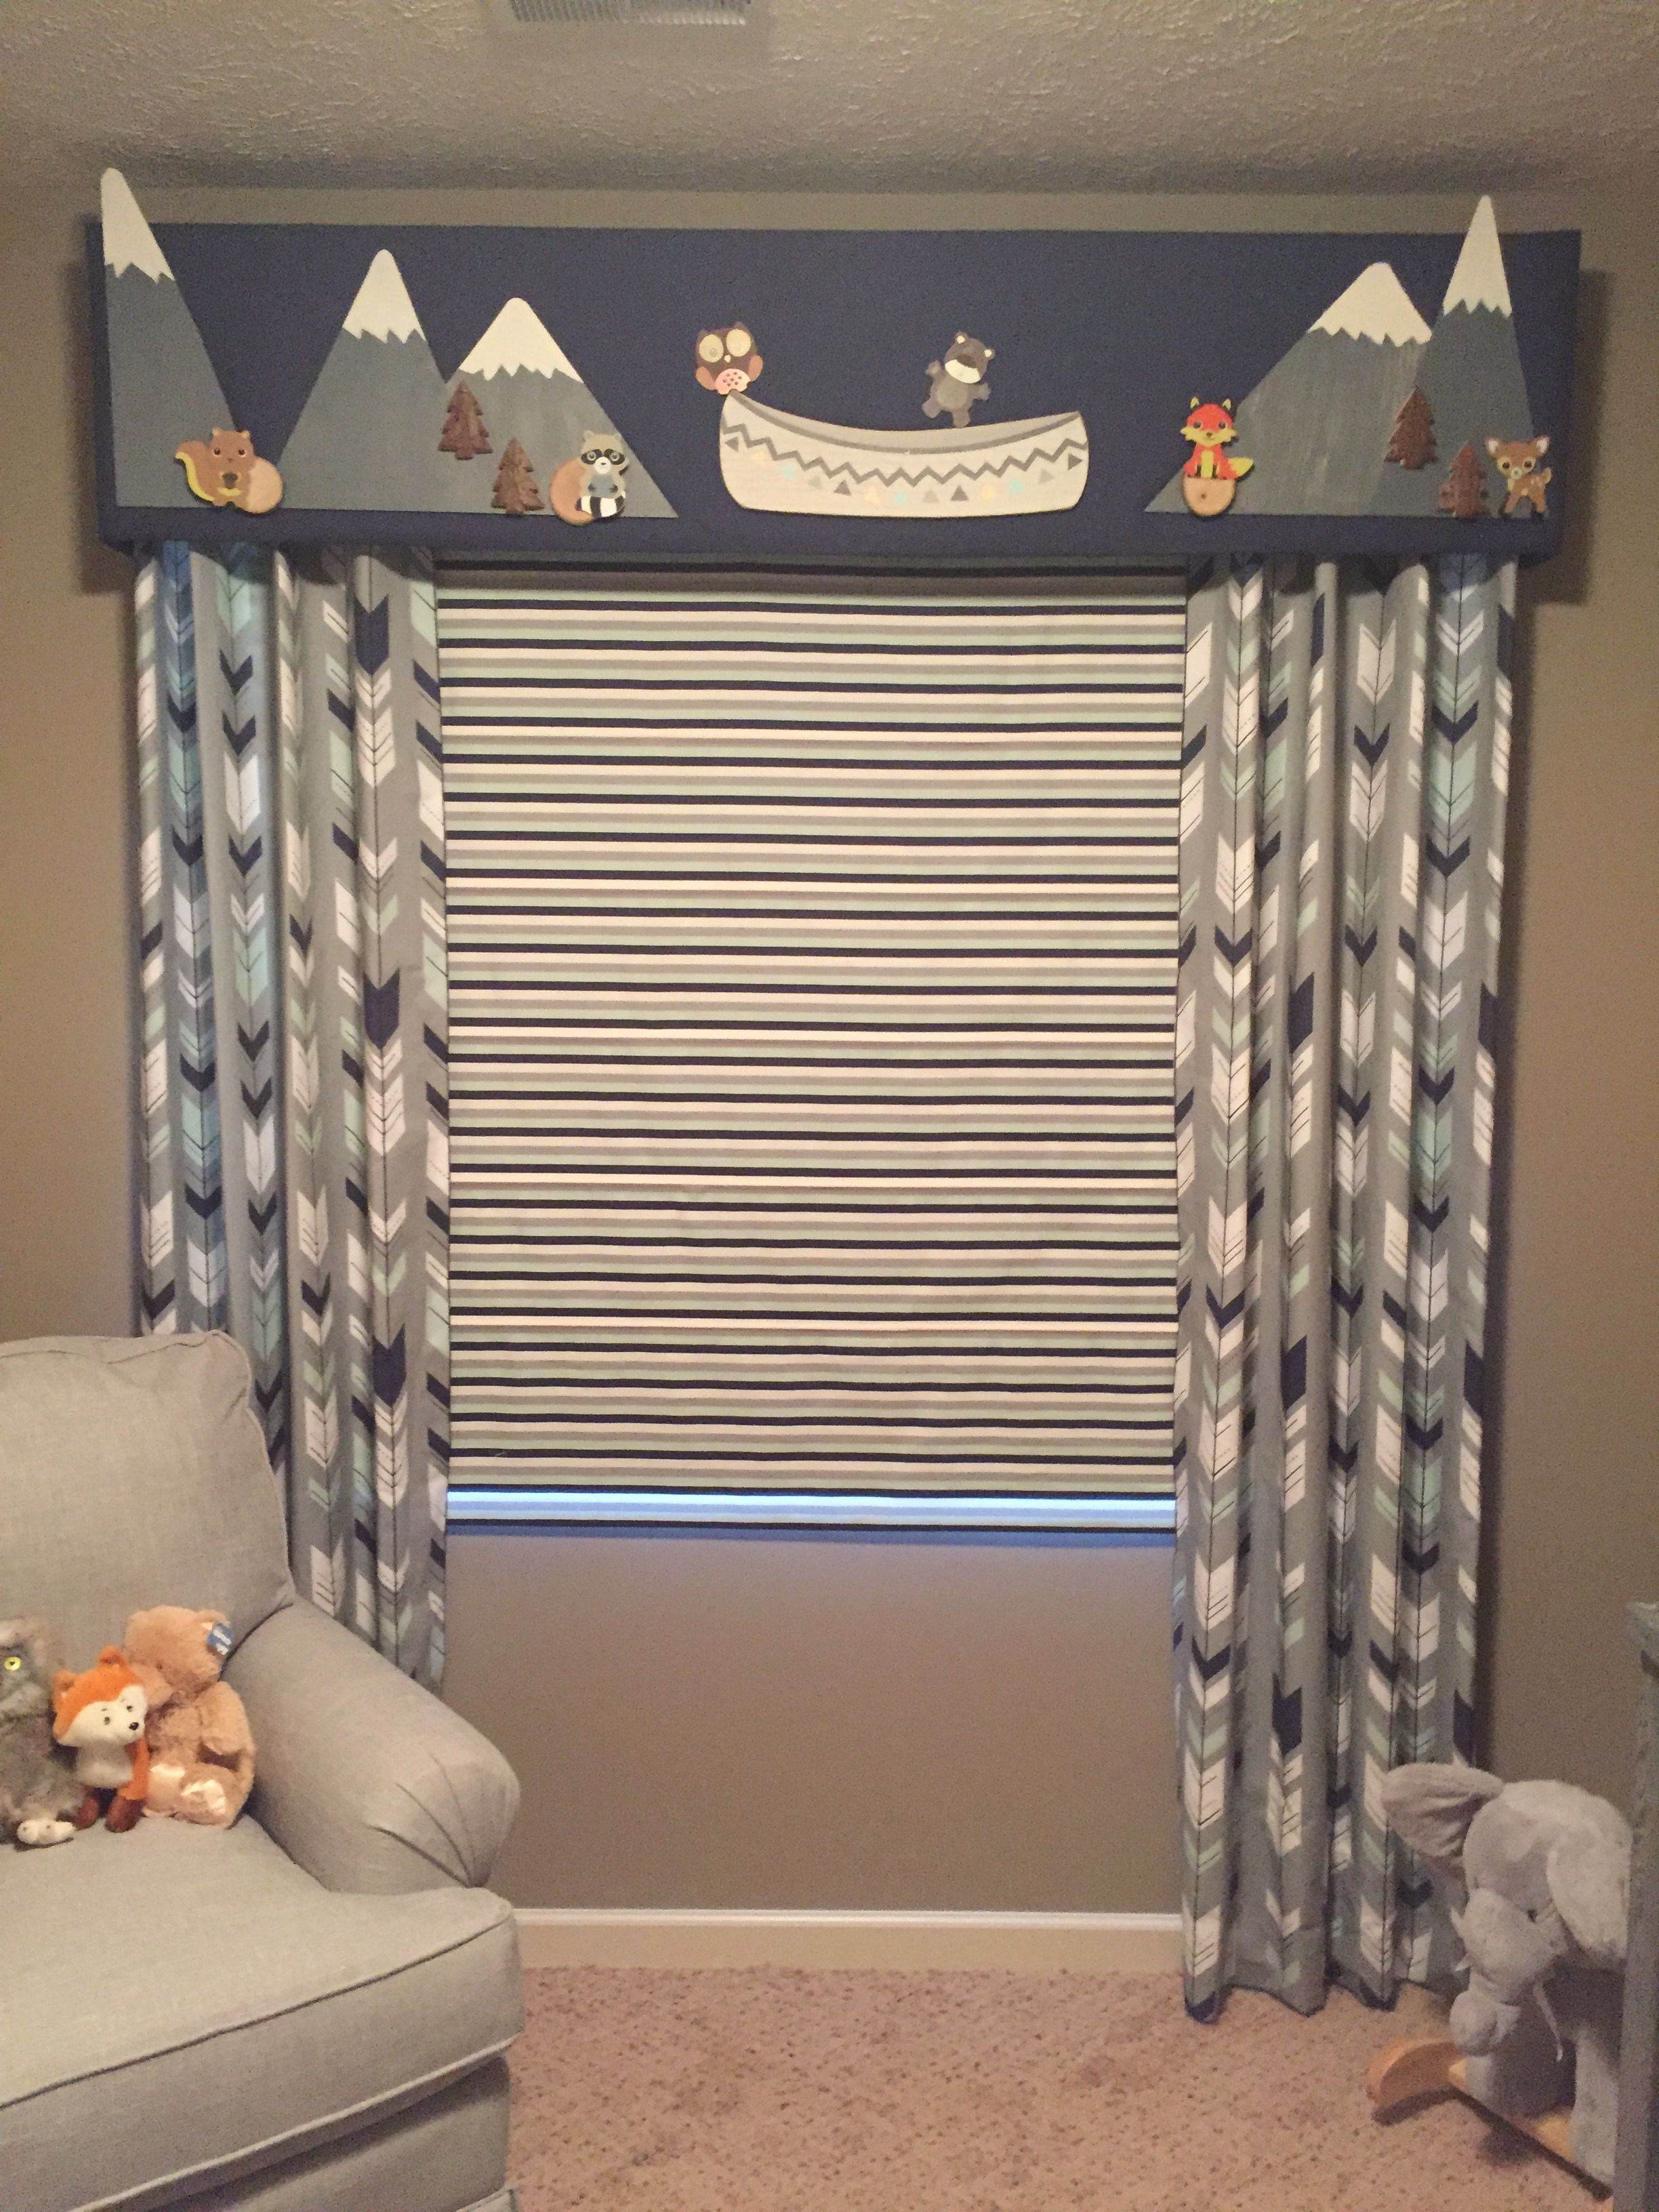 Nursery window ideas  custom baby boy nursery valance roman shade and side curtains by